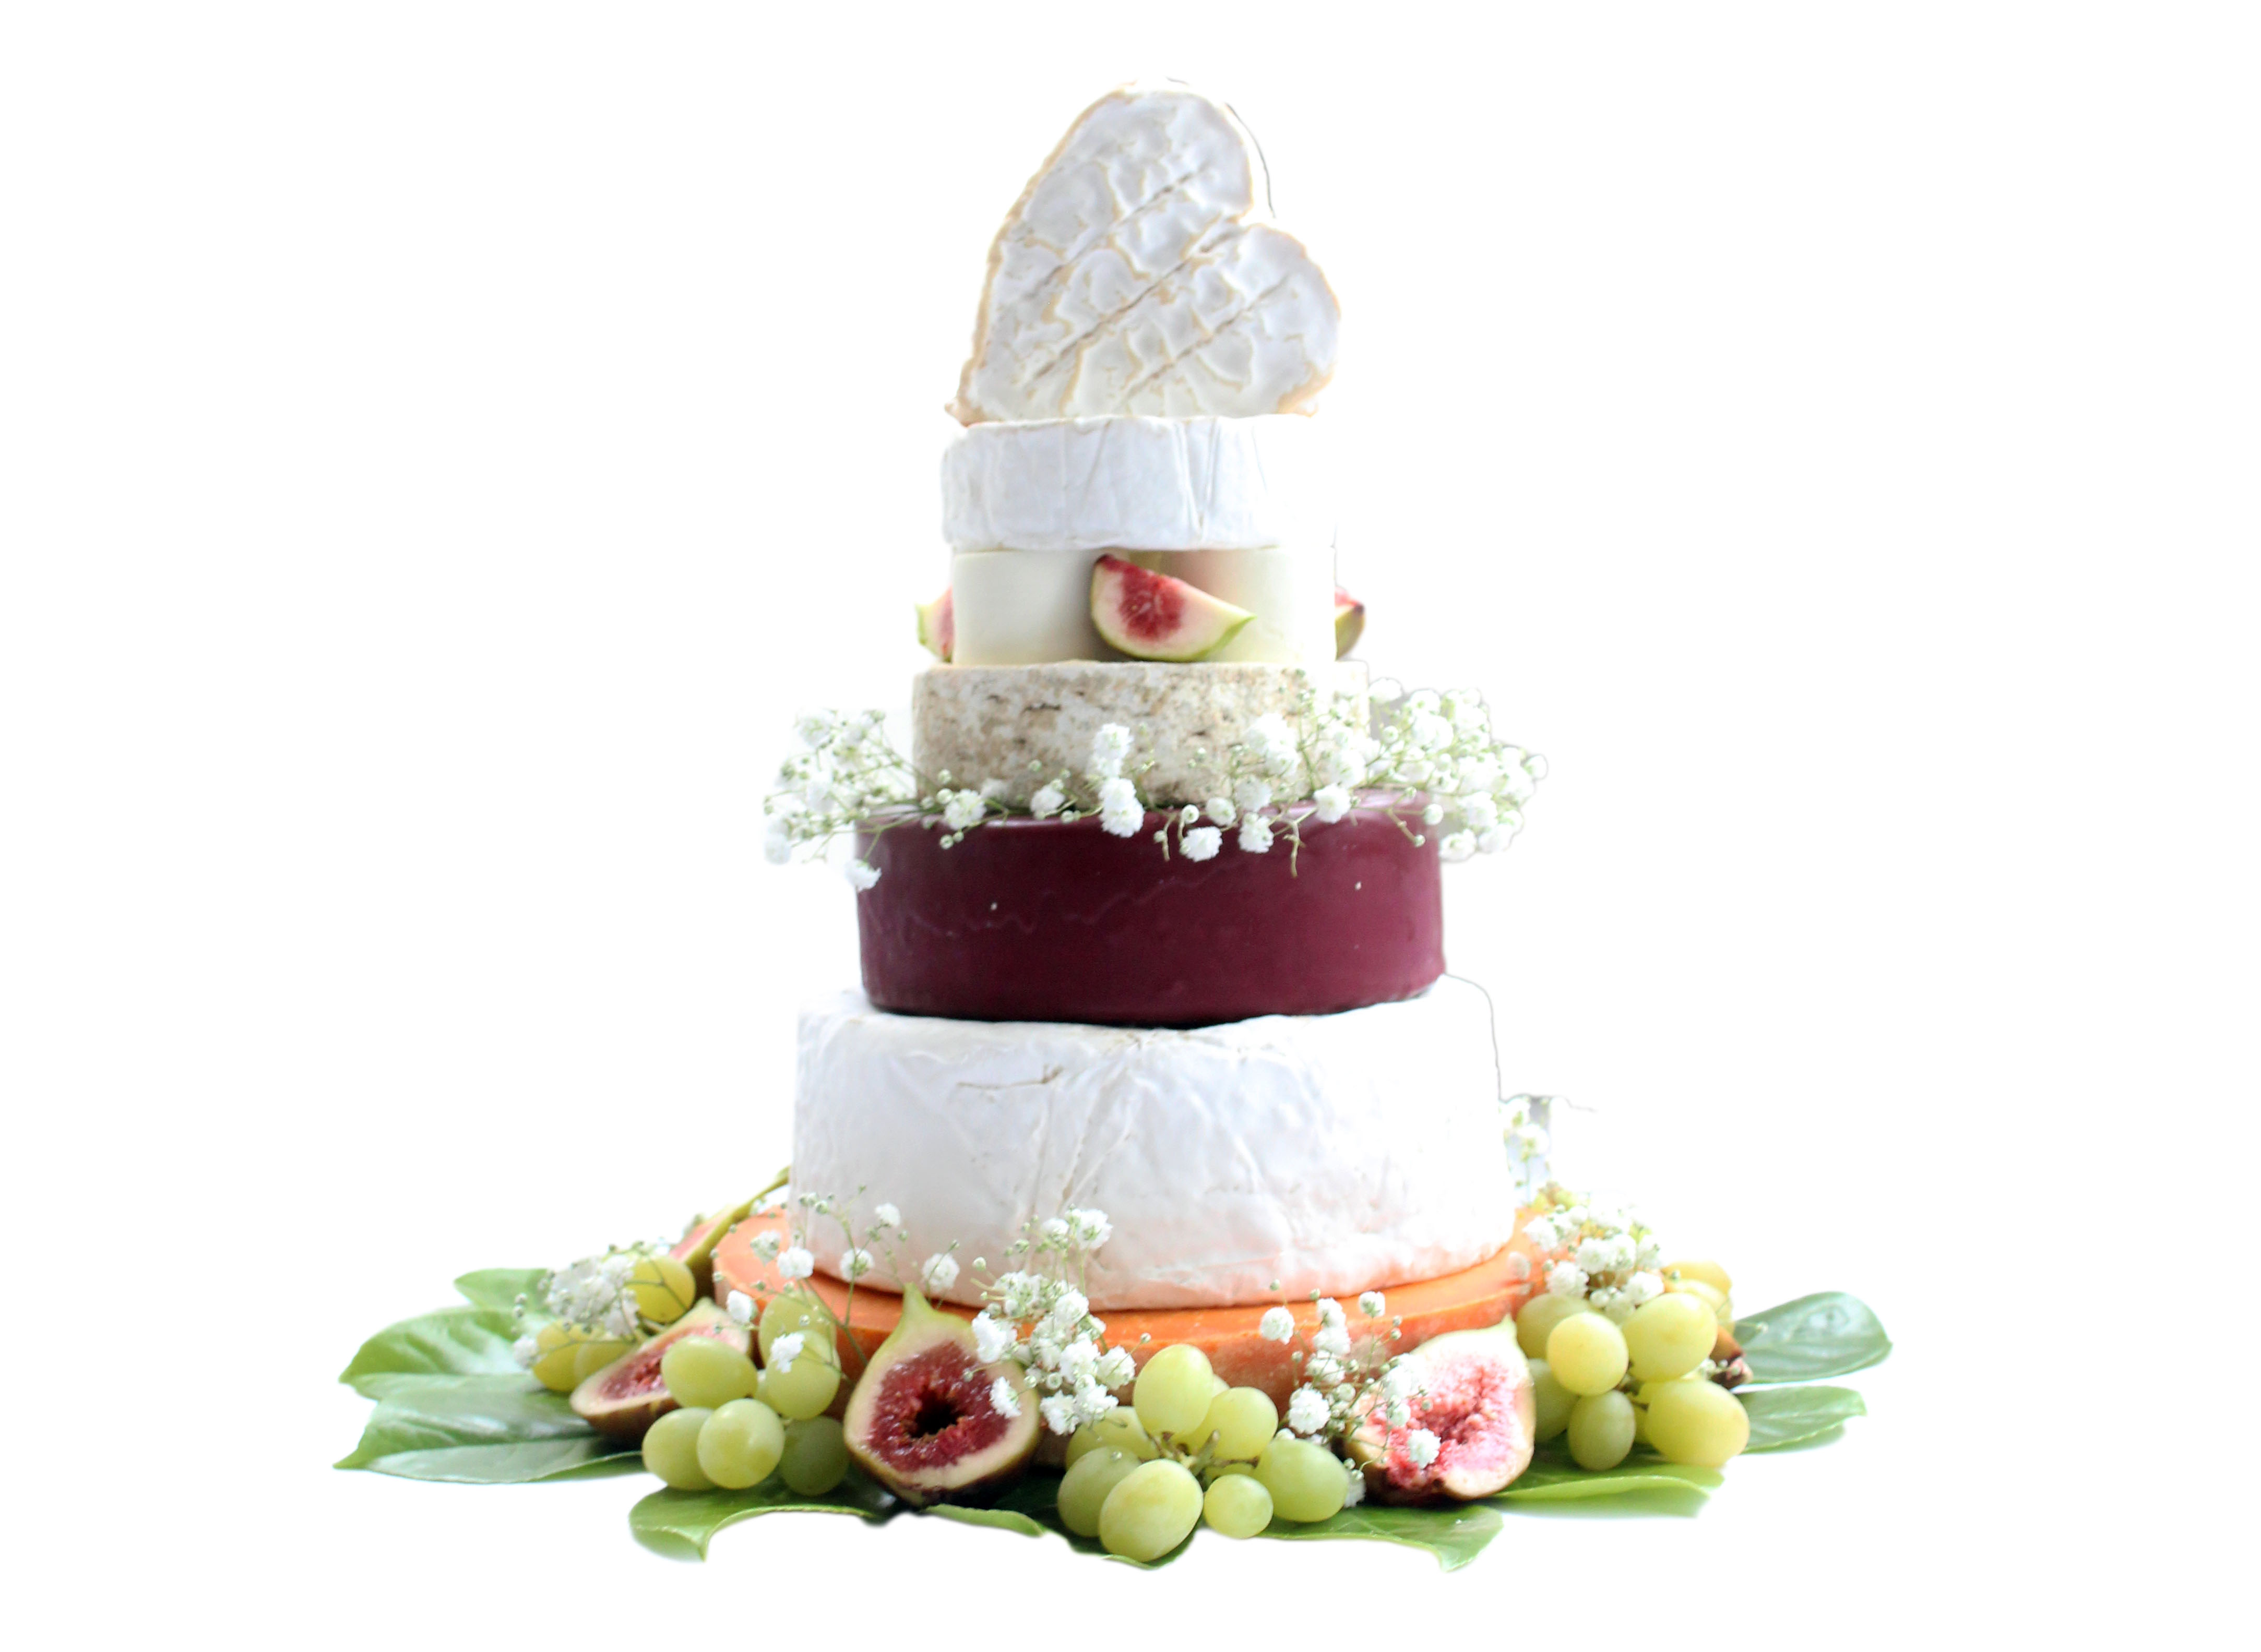 Otters Cheese Celebration Cake Example 8 | Otters Fine Foods